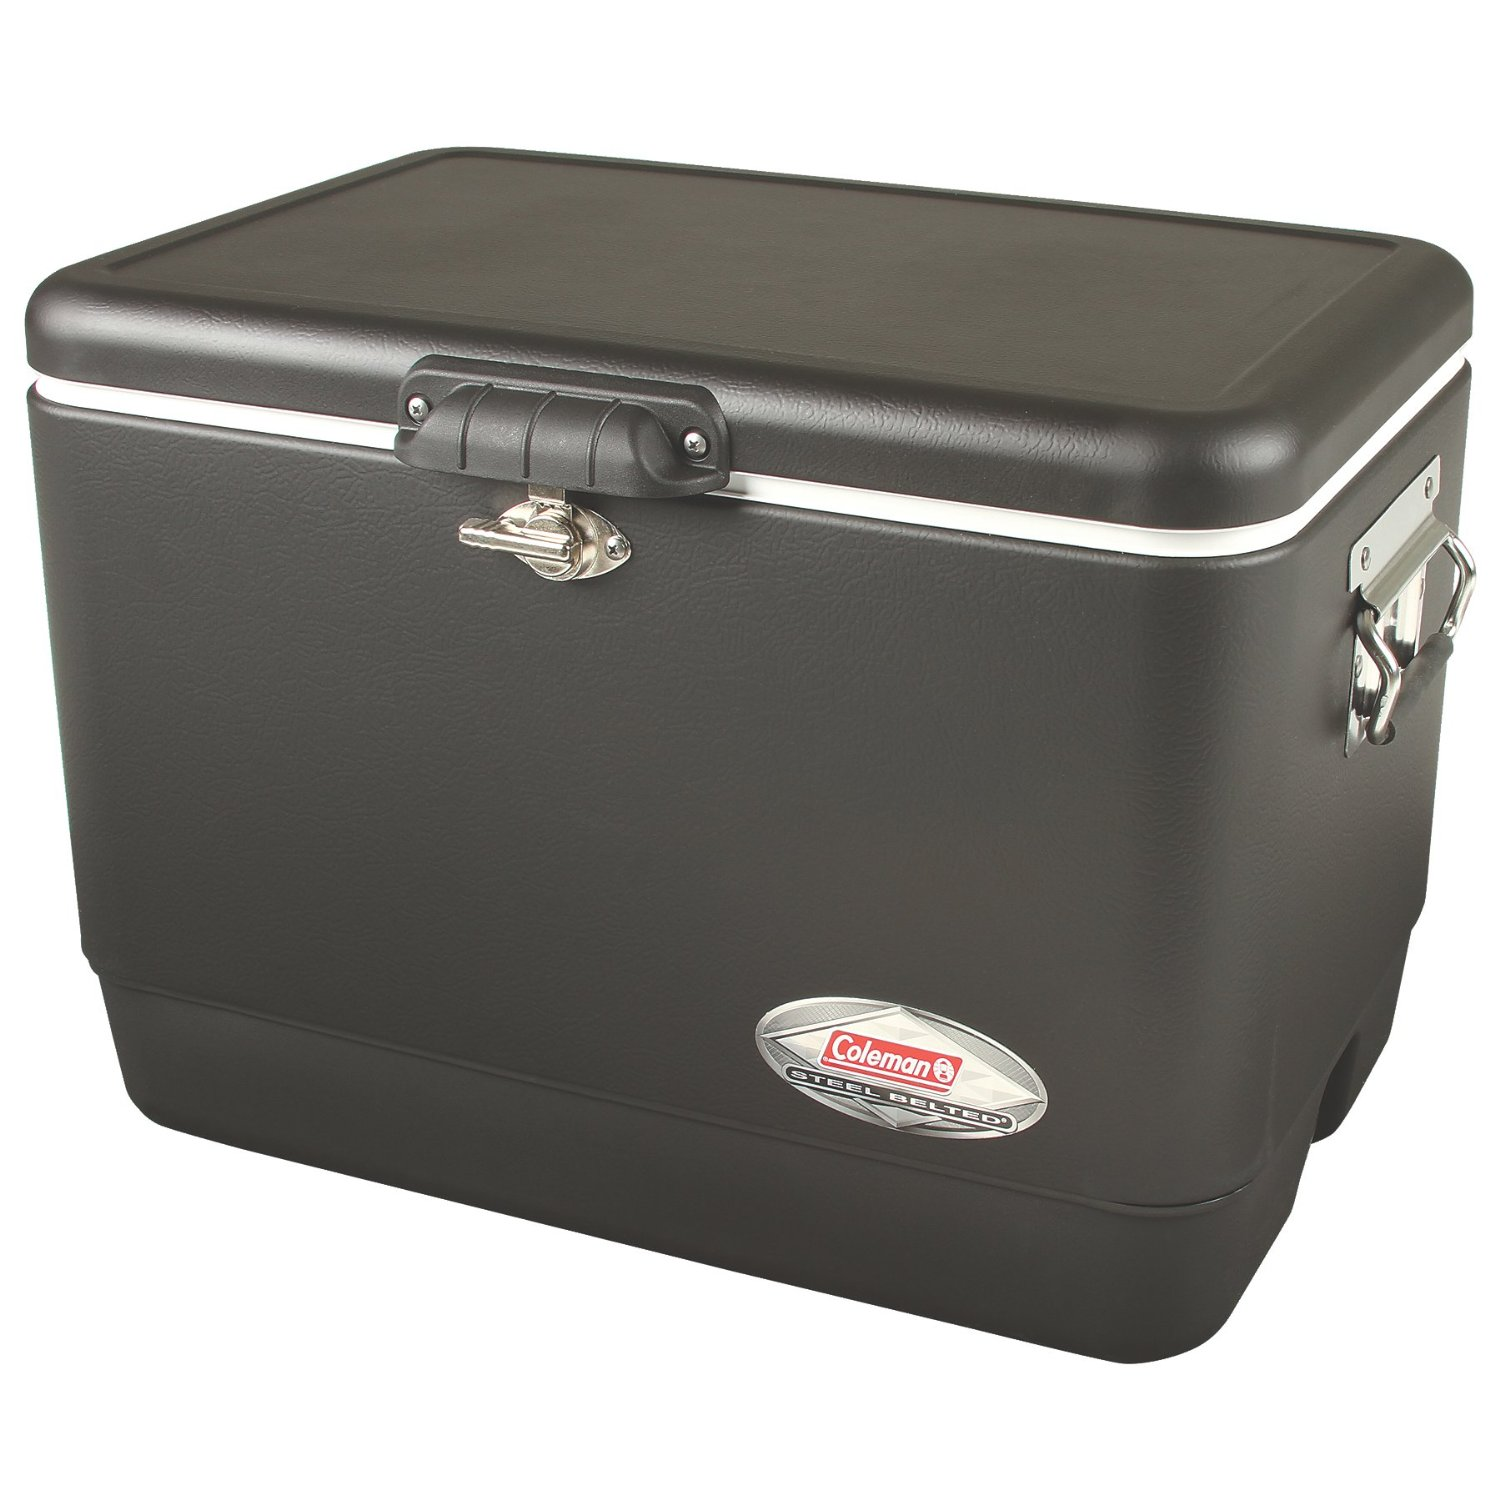 Coleman 54-Quart Steel-Belted Cooler – Rust and Leak Proof, Rubber Grips, Available in 8 Colors